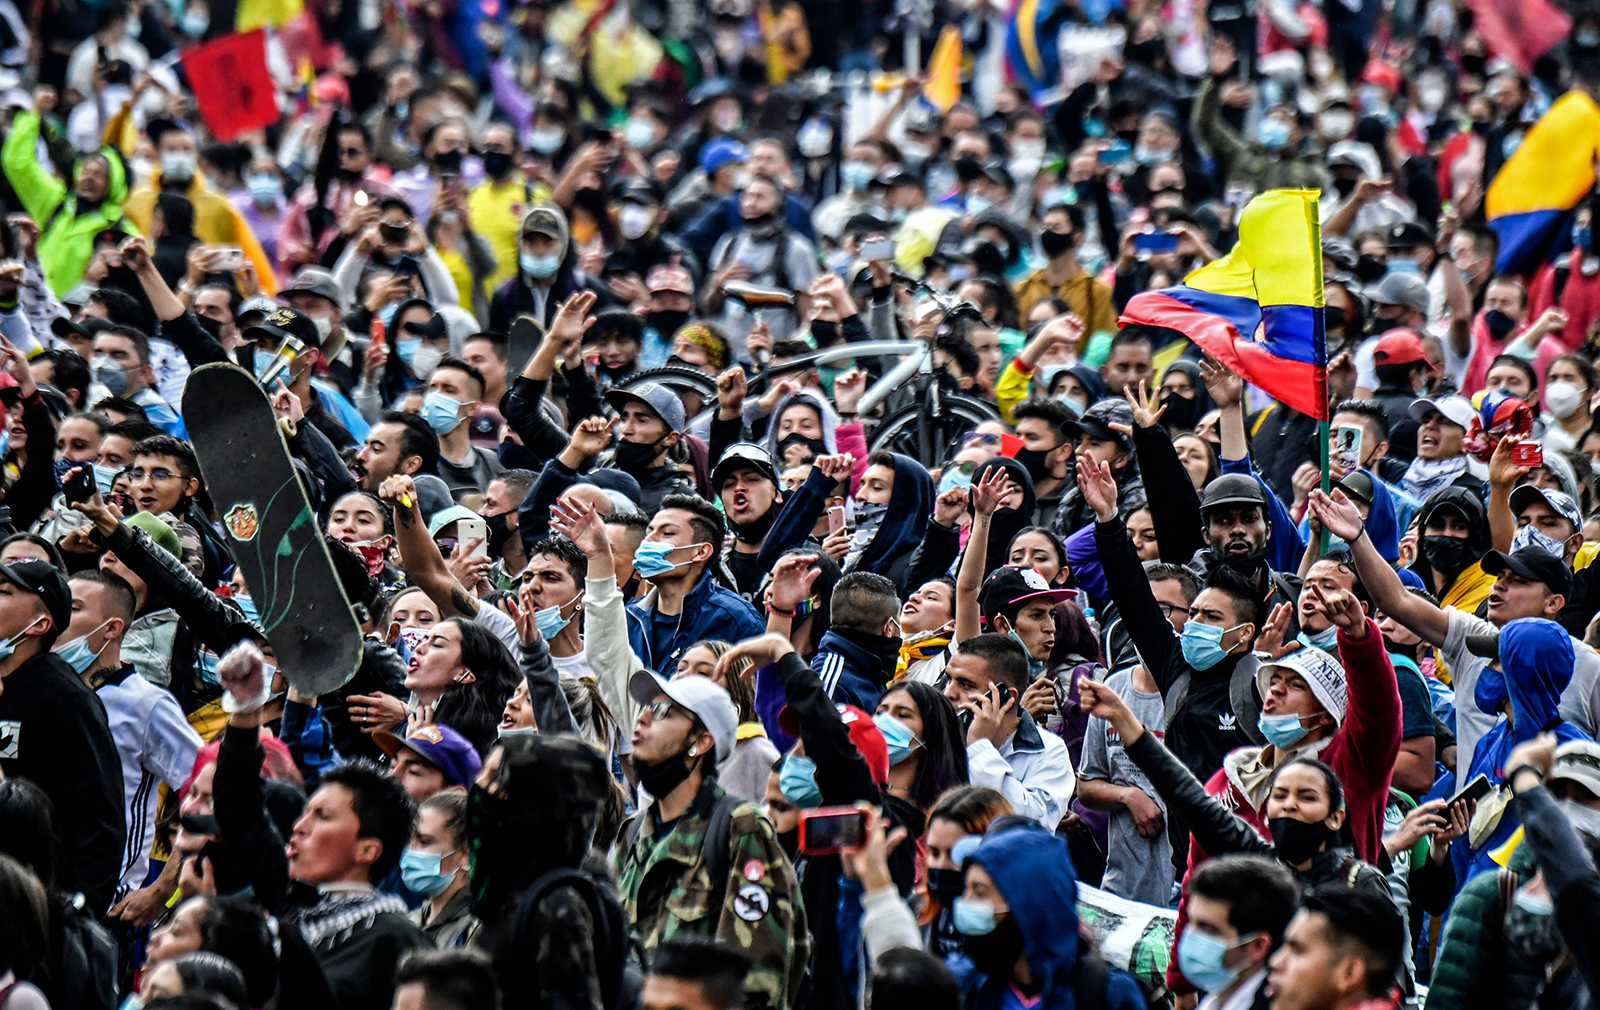 People take part in a protest against a tax reform bill launched by Colombian President Ivan Duque, in Bogota, Colombia, on April 28.